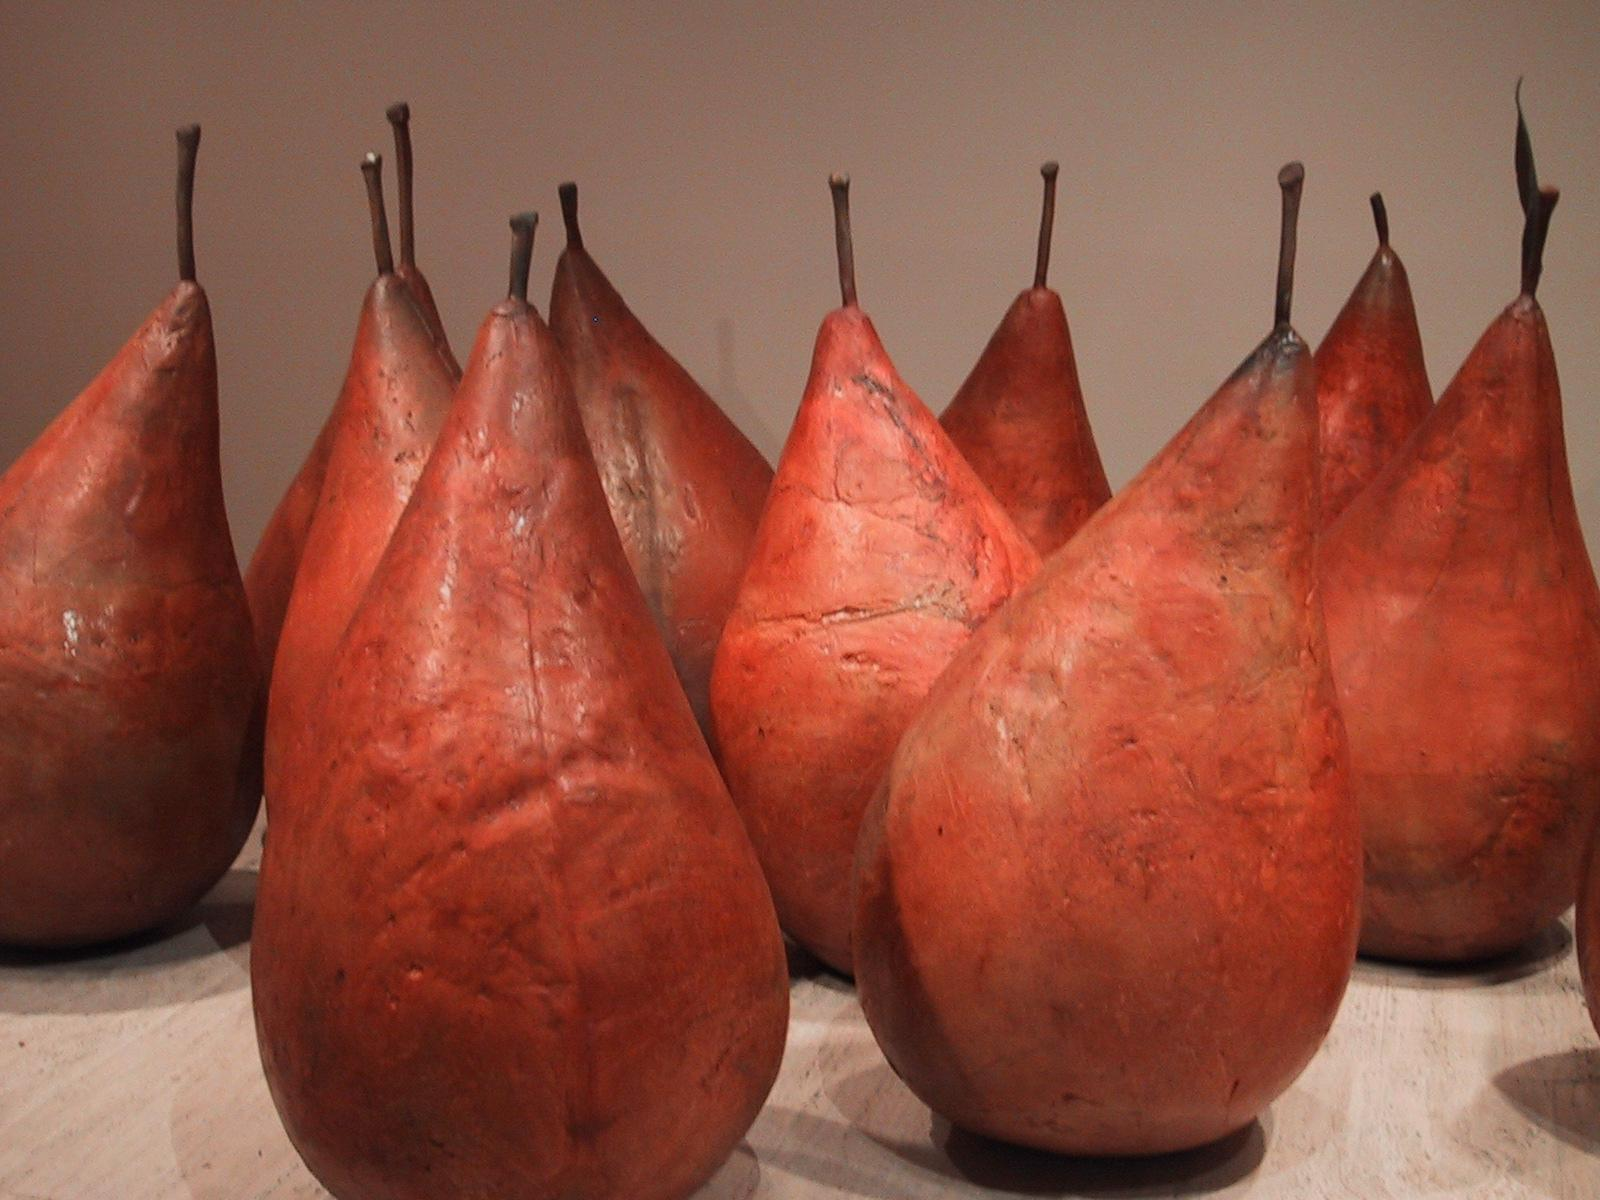 person sized pears at the art gallery of new south greenspun philip